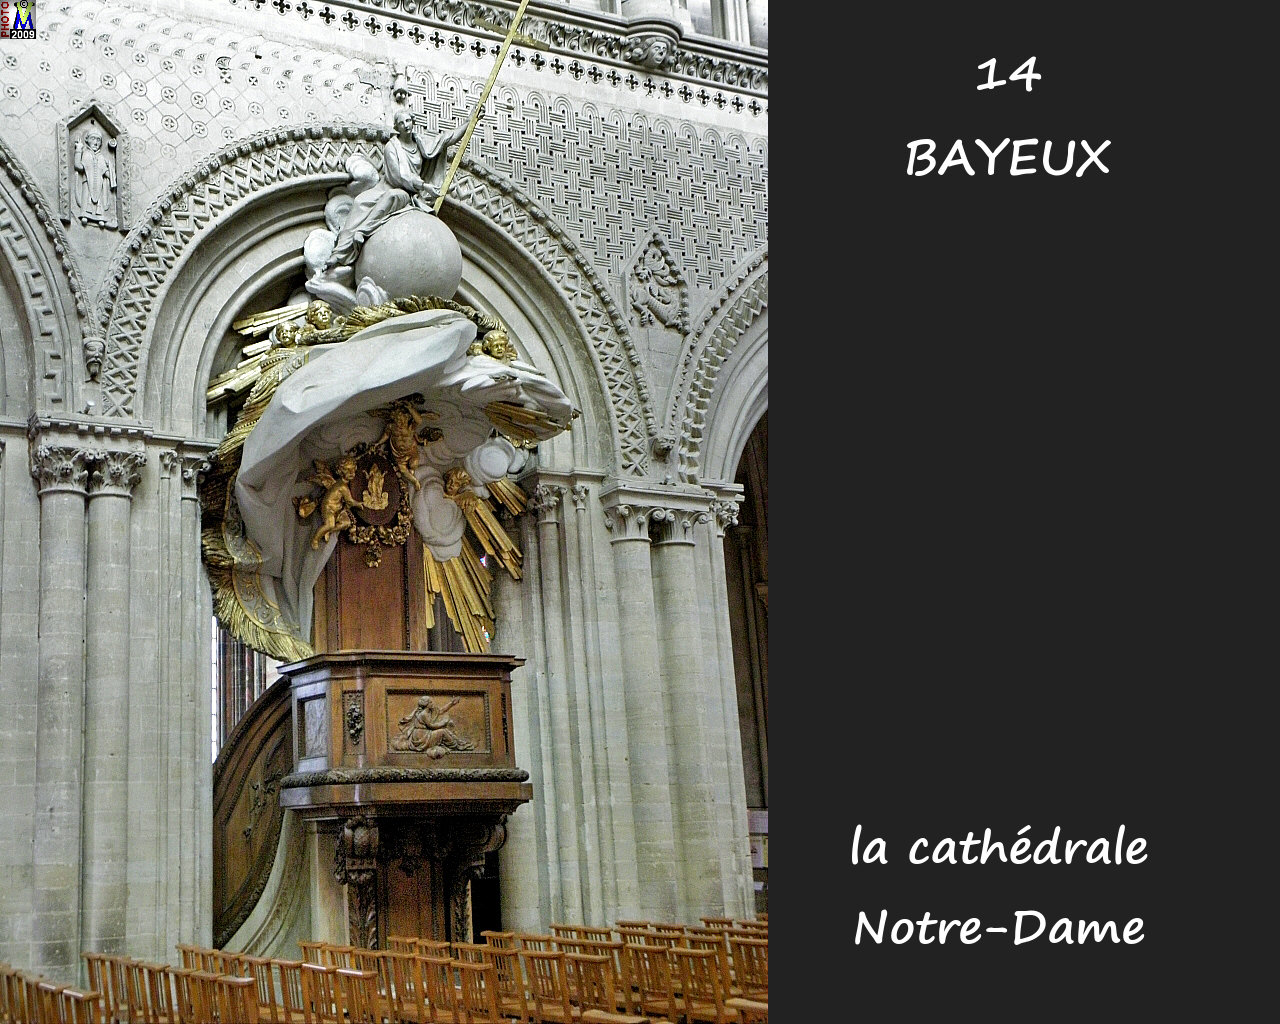 14BAYEUX_cathedrale_246.jpg